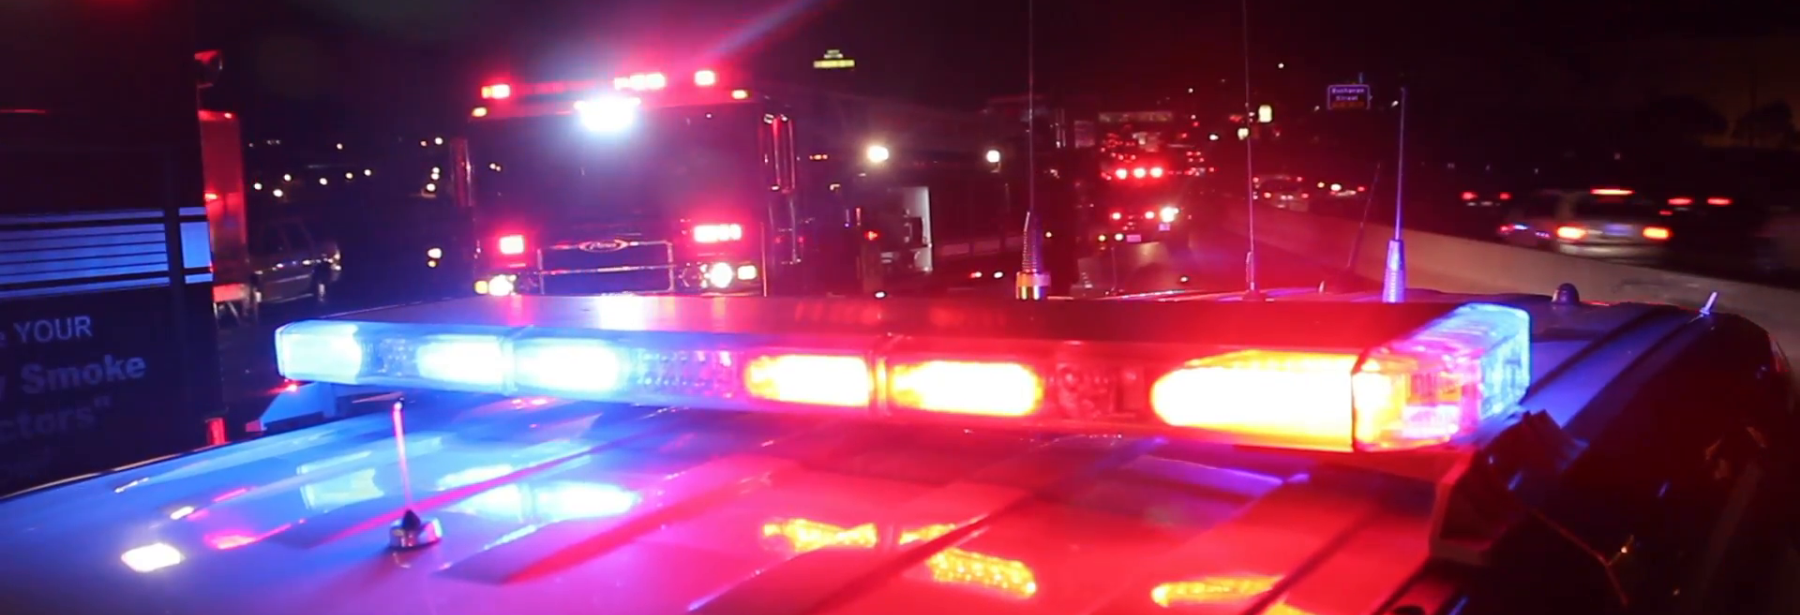 emergency vehicle lights at night